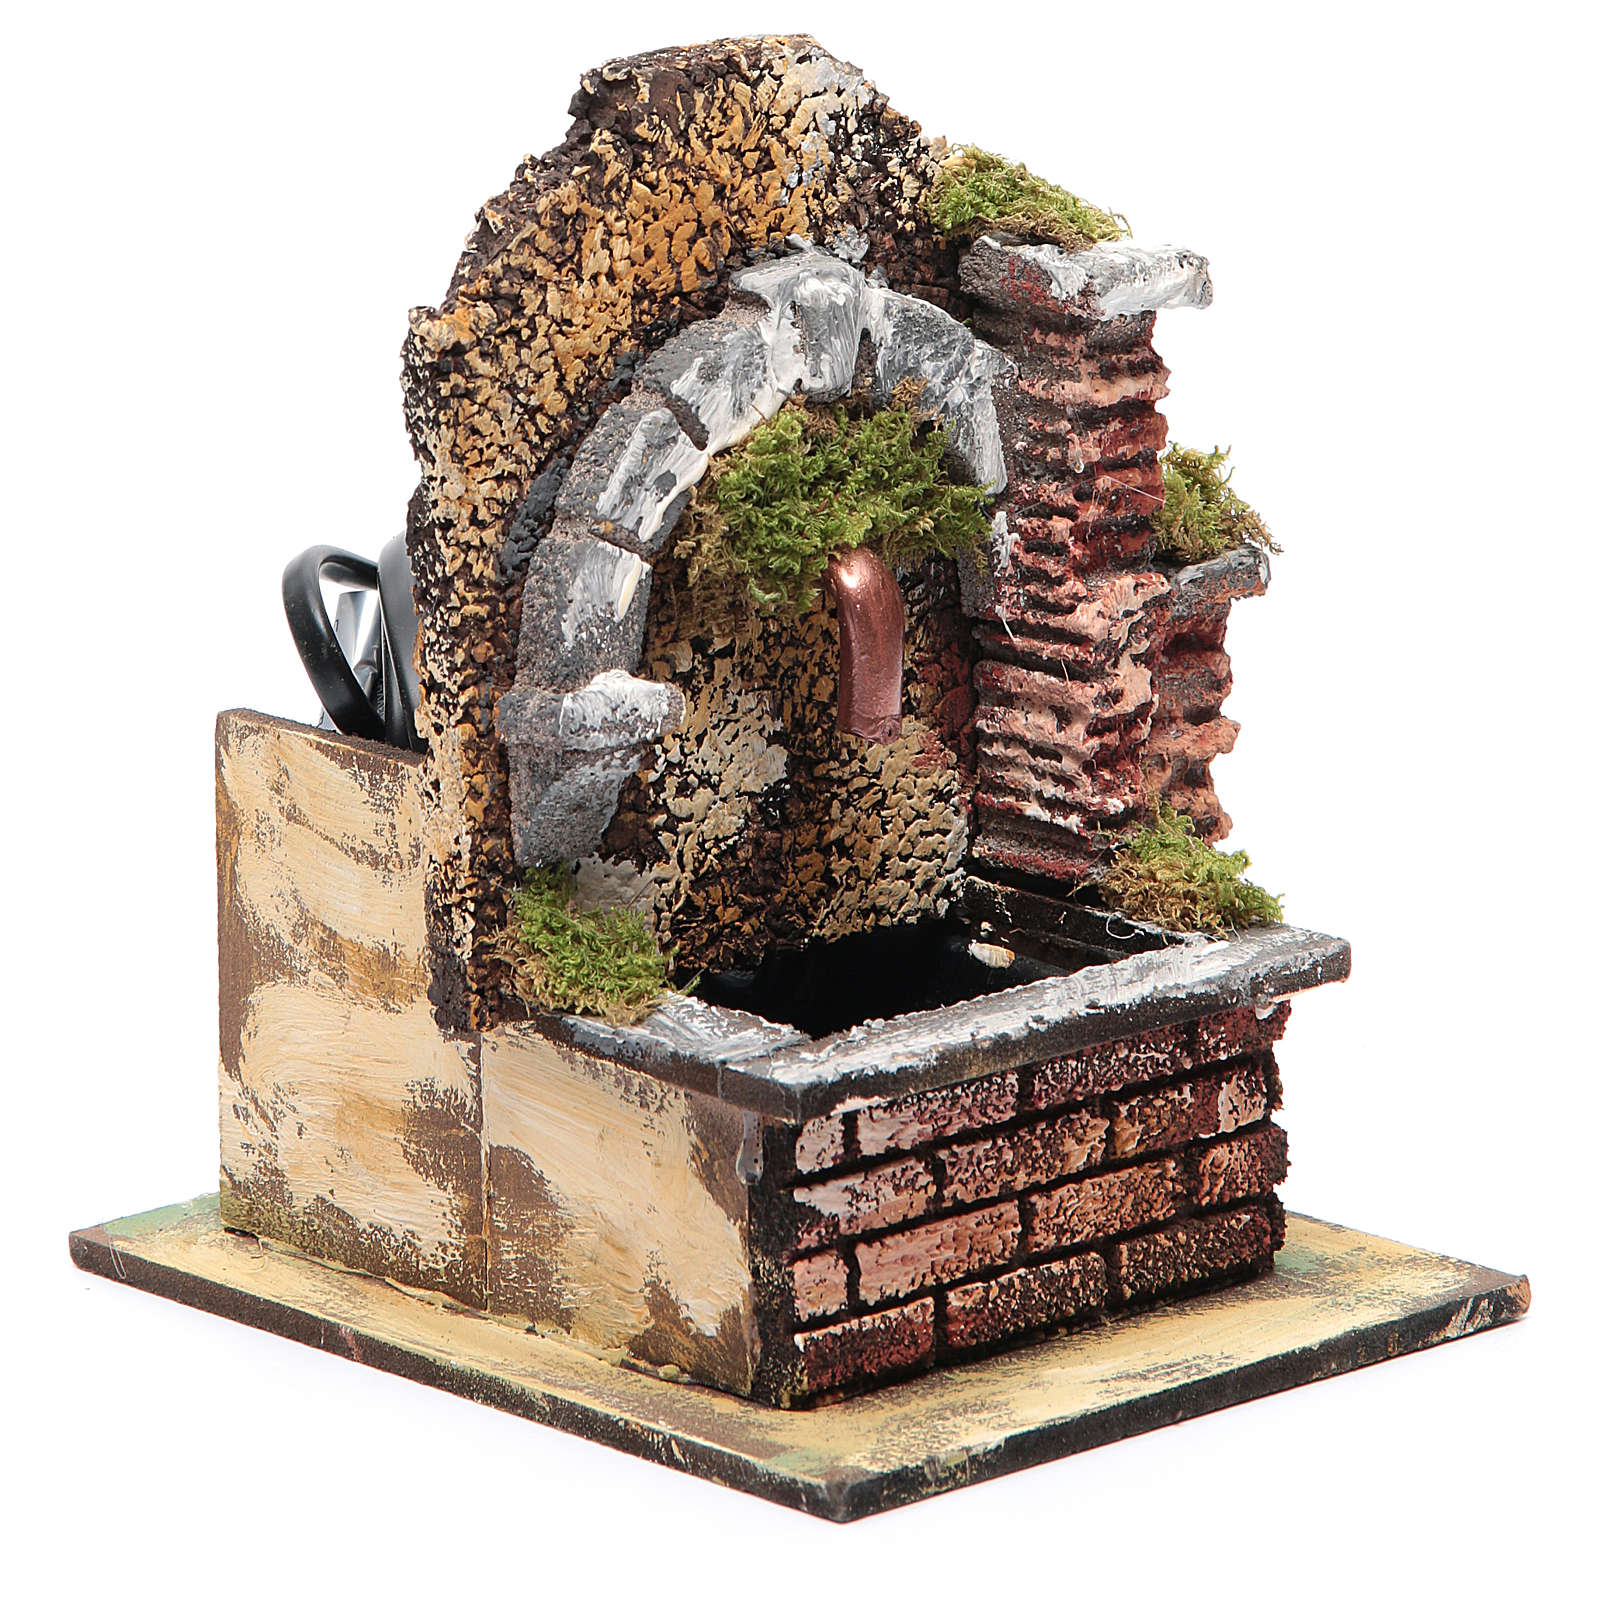 Arched fountain with submersible pump 15x10x15 cm 4